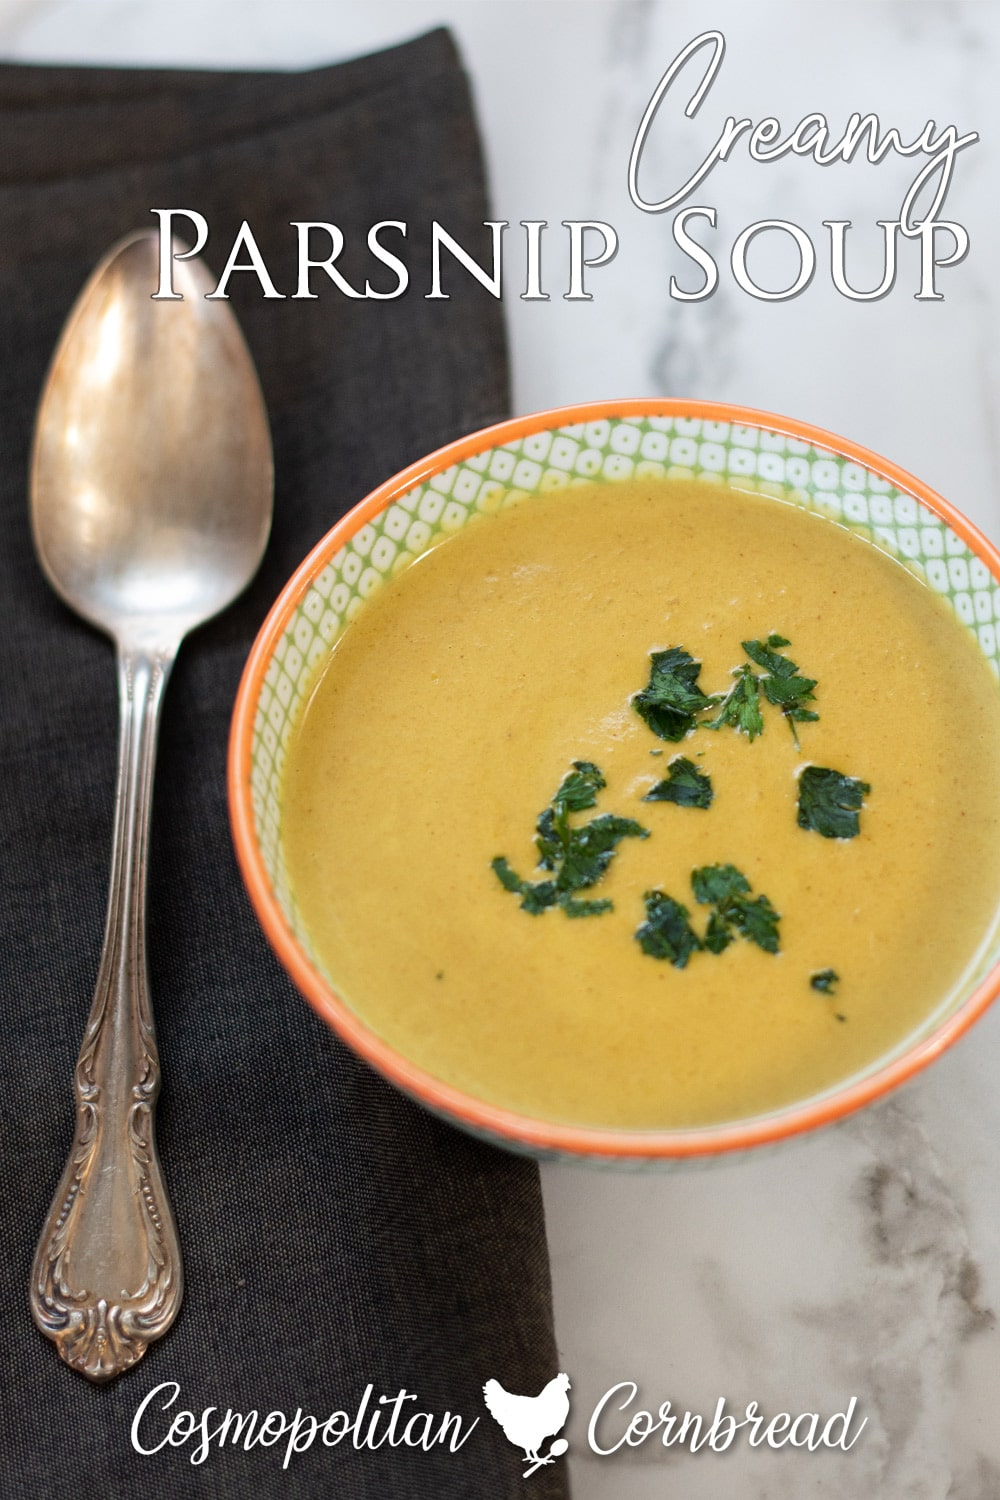 Creamy Parsnip Soup is a wonderful and healthy way to enjoy this much-overlooked root vegetable.